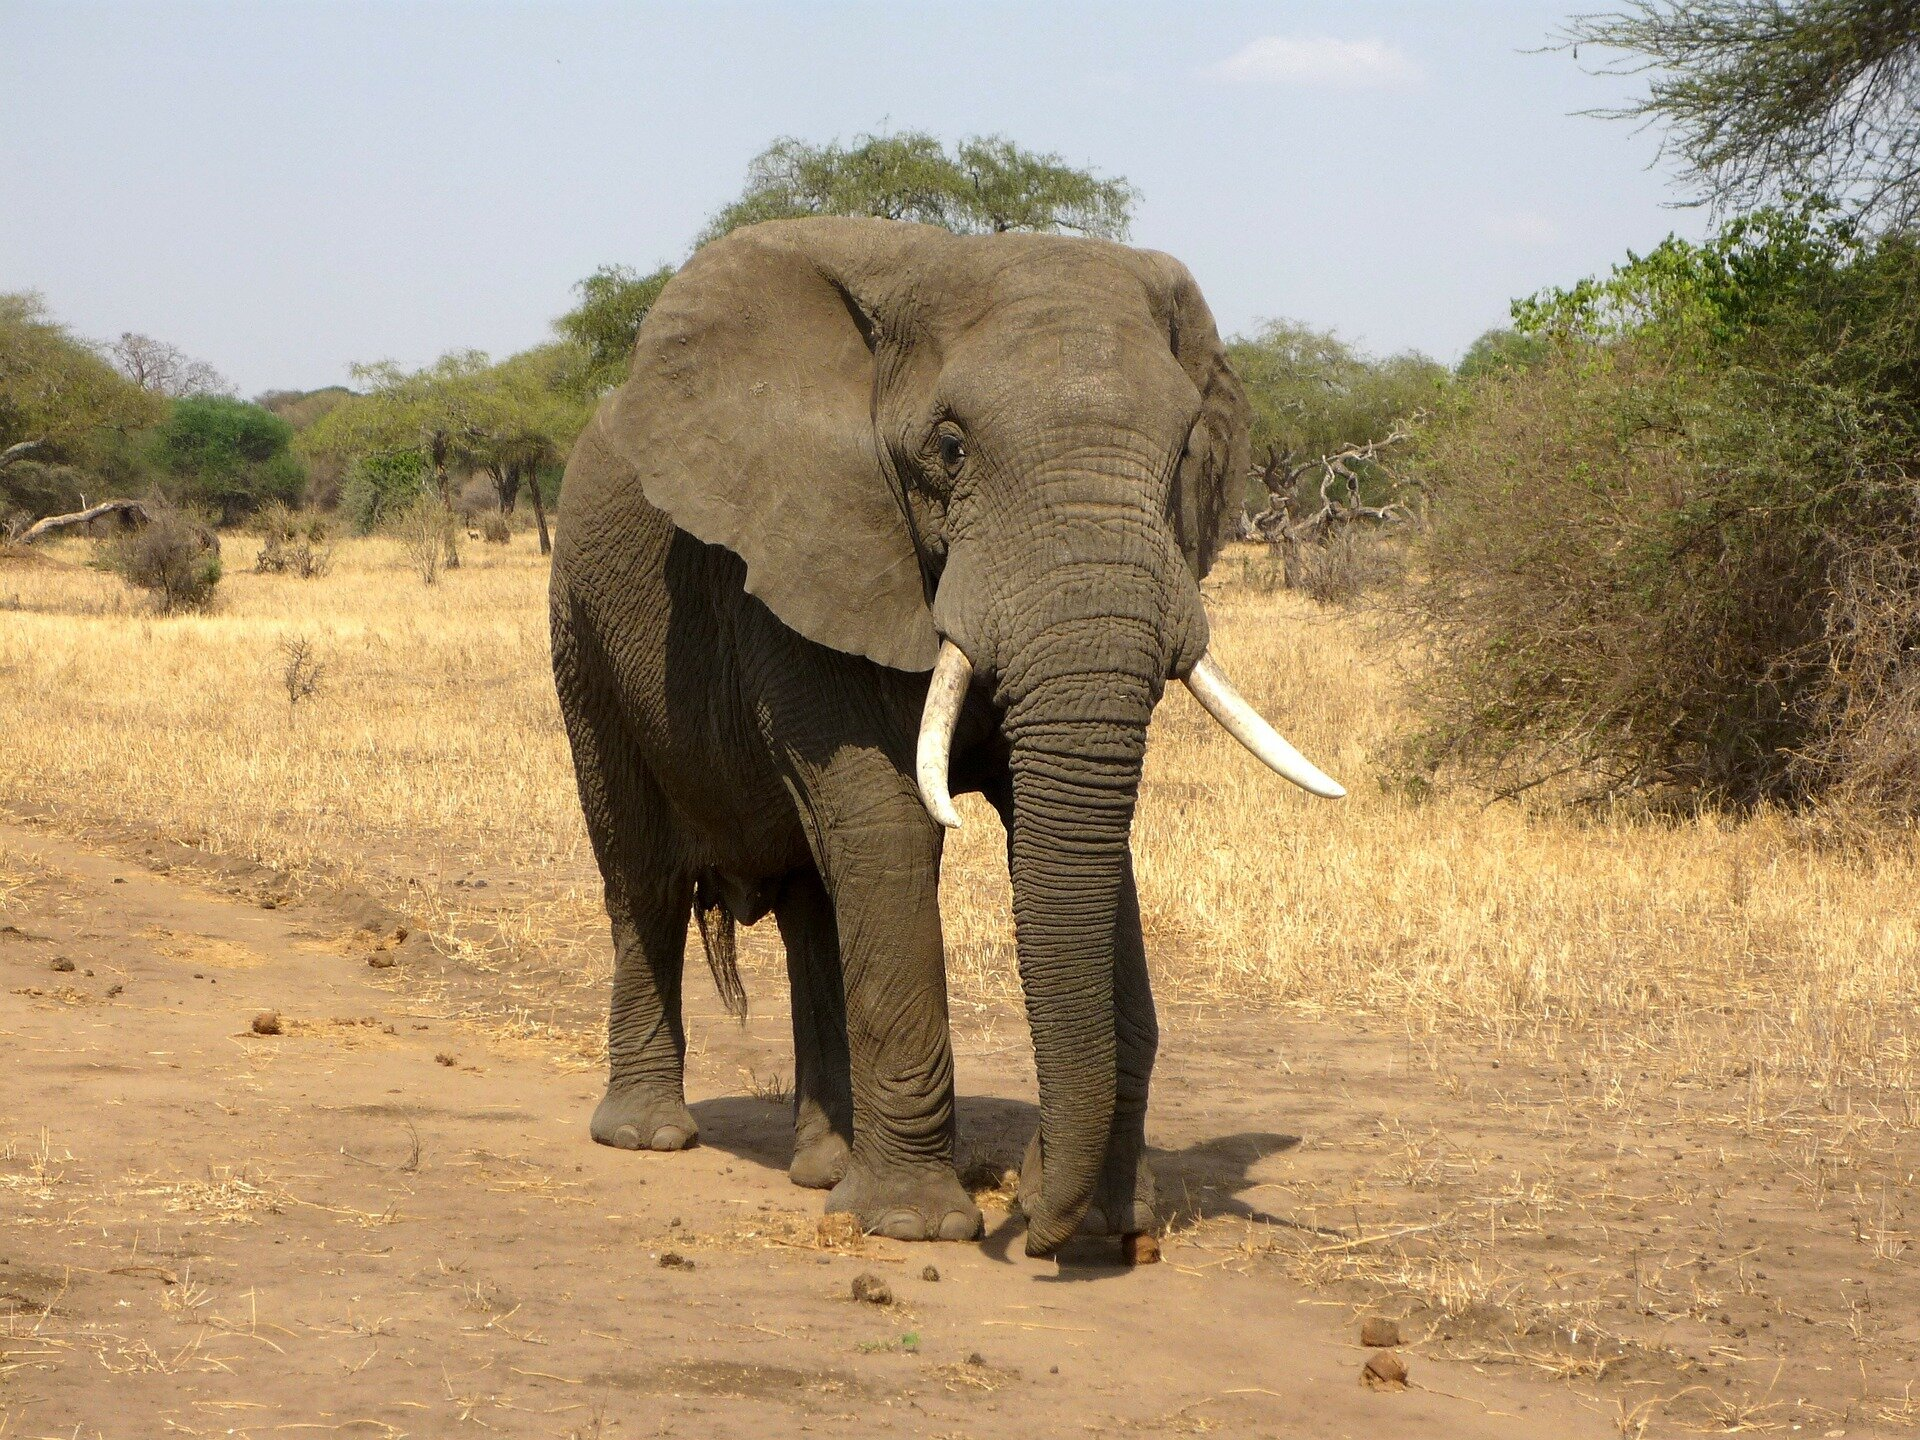 Elephants Can Differentiate Between Food Amounts By Smell Alone